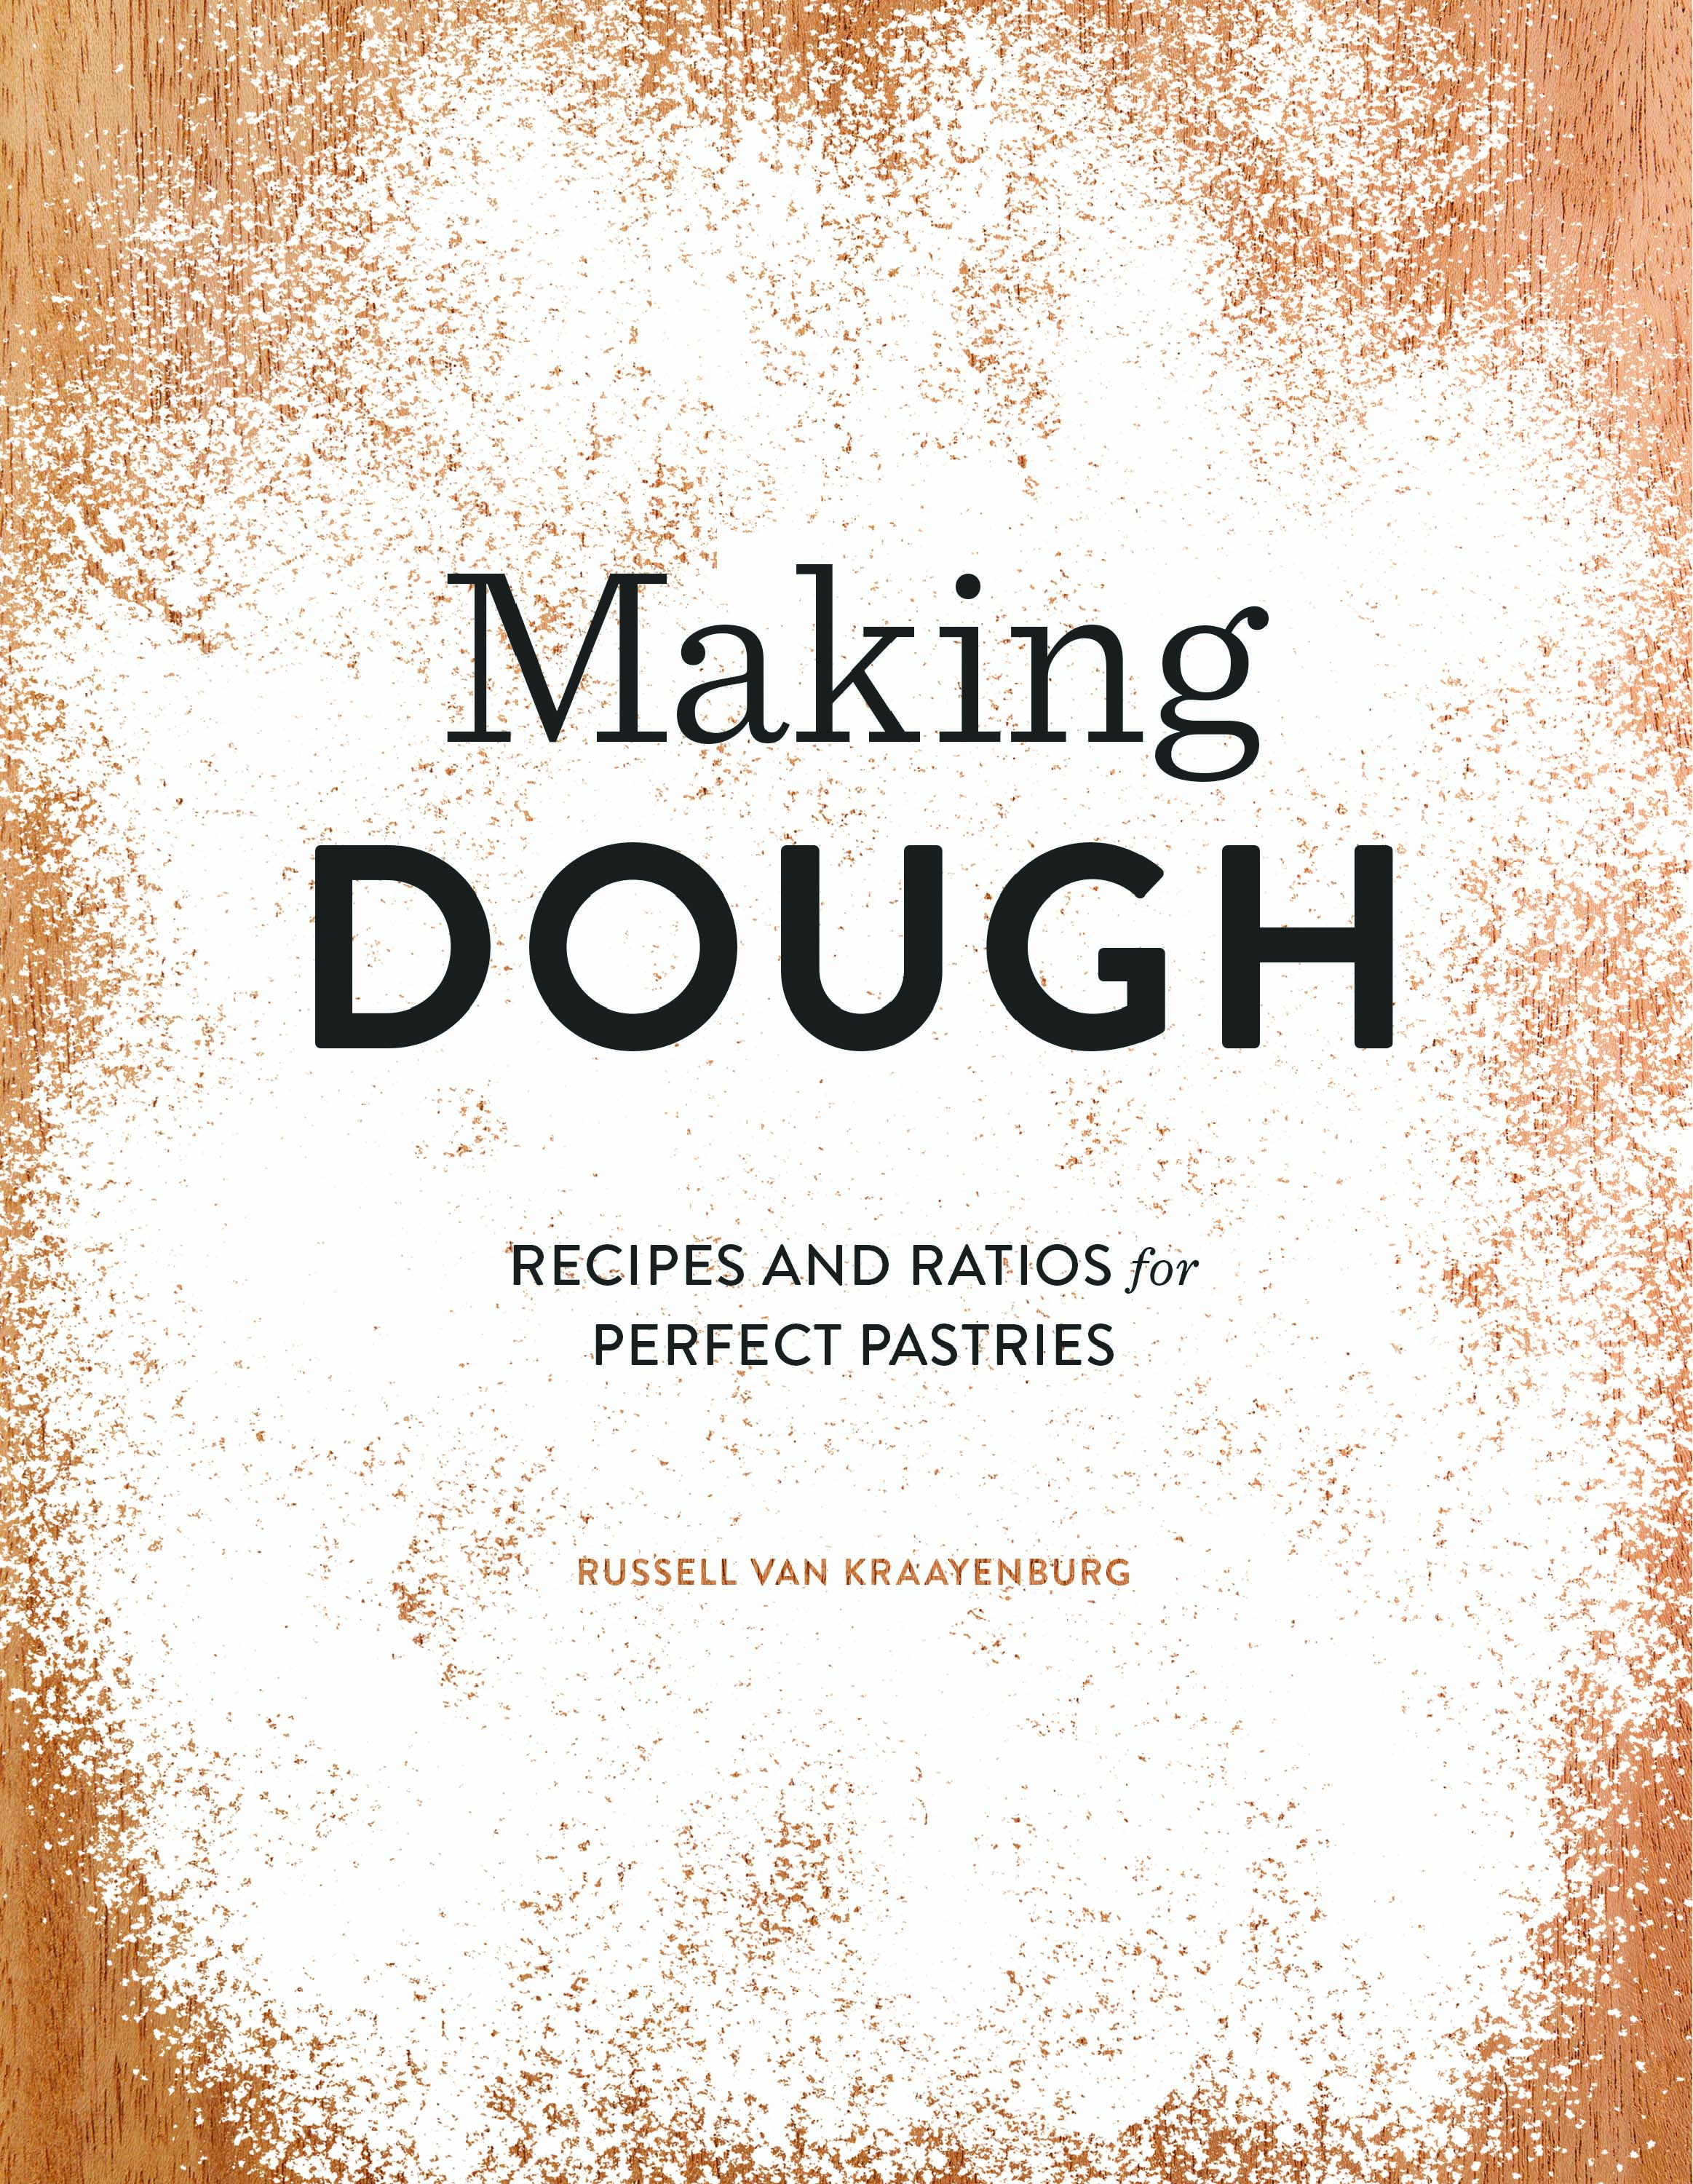 making dough by russell van kraayenburg review recipe